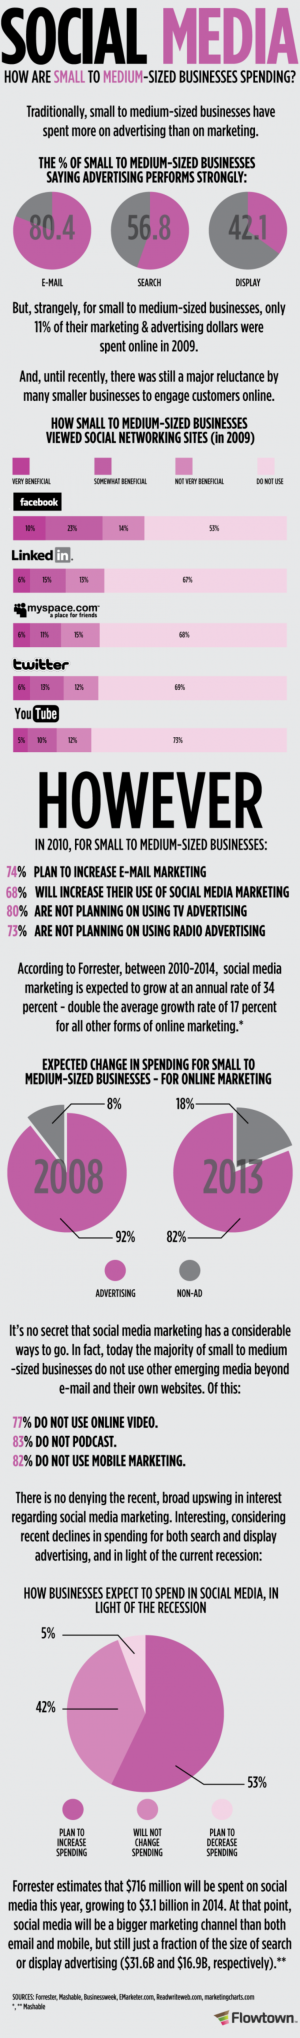 how-businesses-spend-on-social-media-3-520x3533.png